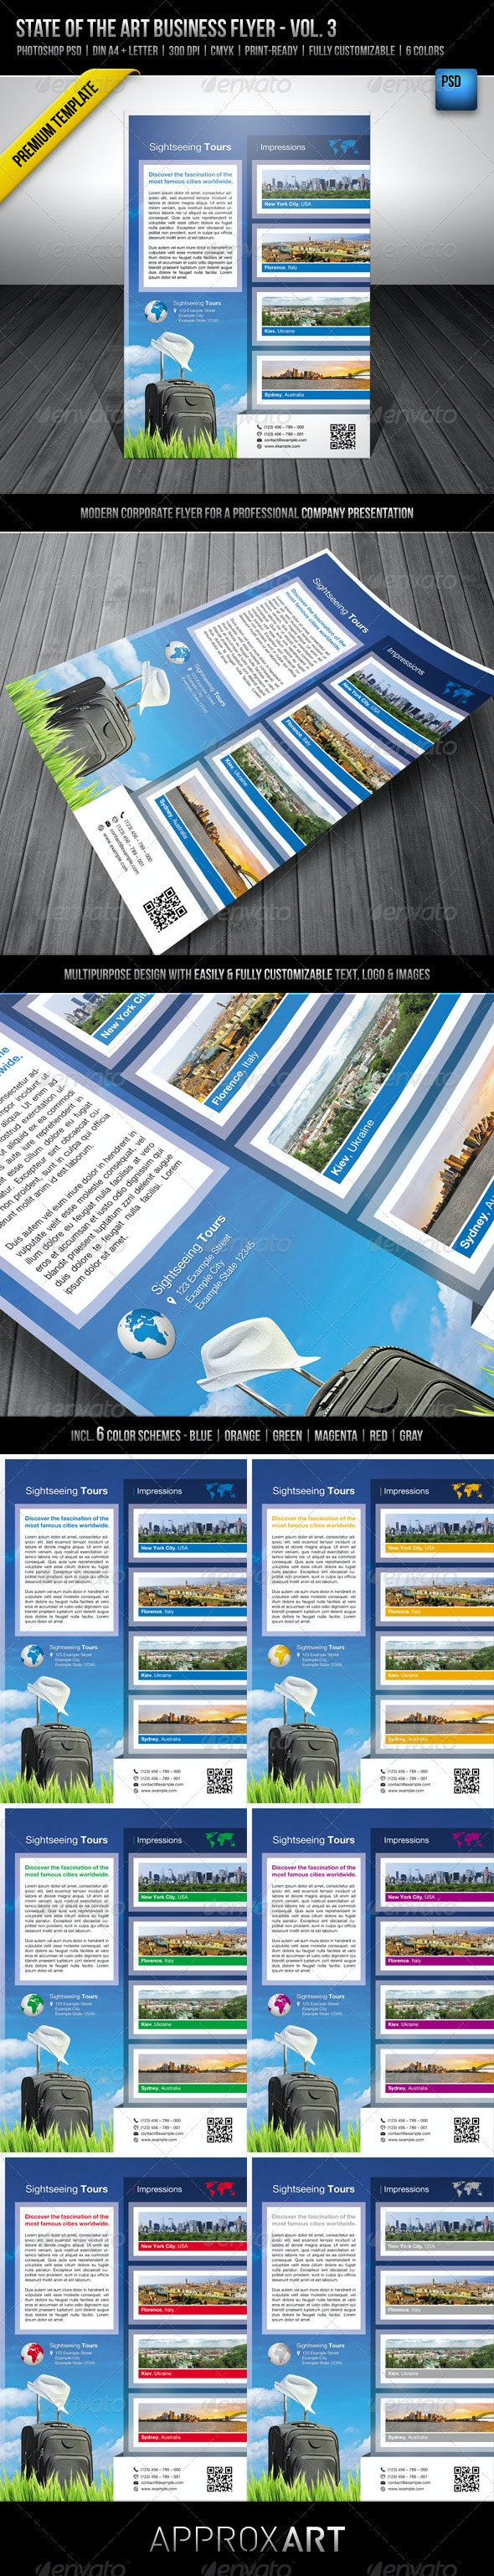 State of the Art Business Flyer - Vol. 3 - Corporate Flyers